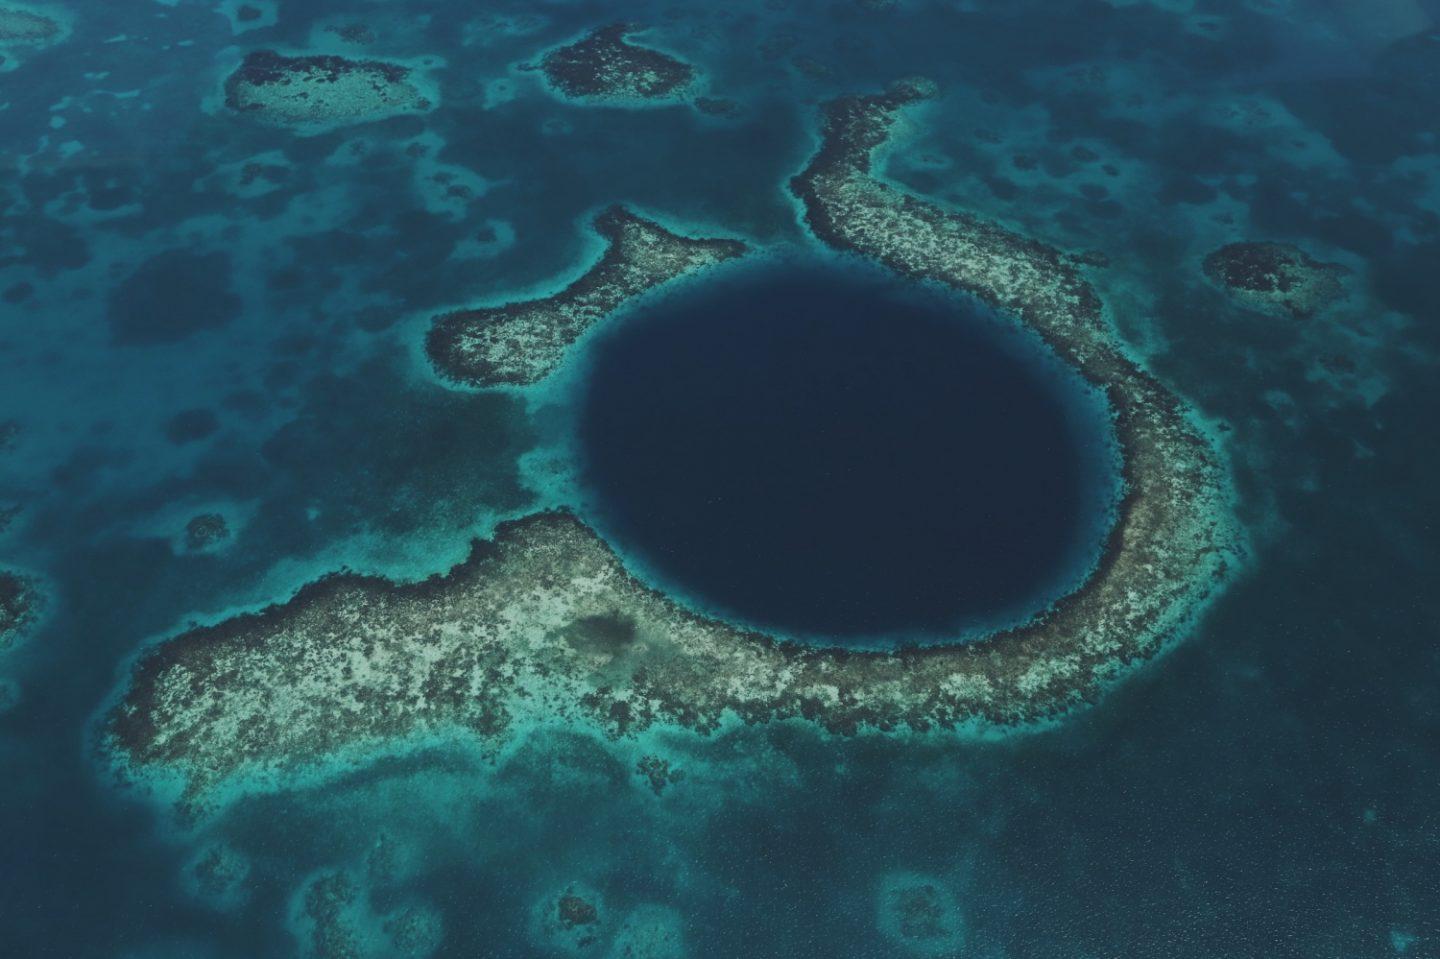 Belize - Das Blue Hole in Caye Caulker! - willascherrybomb - yvonne karnath